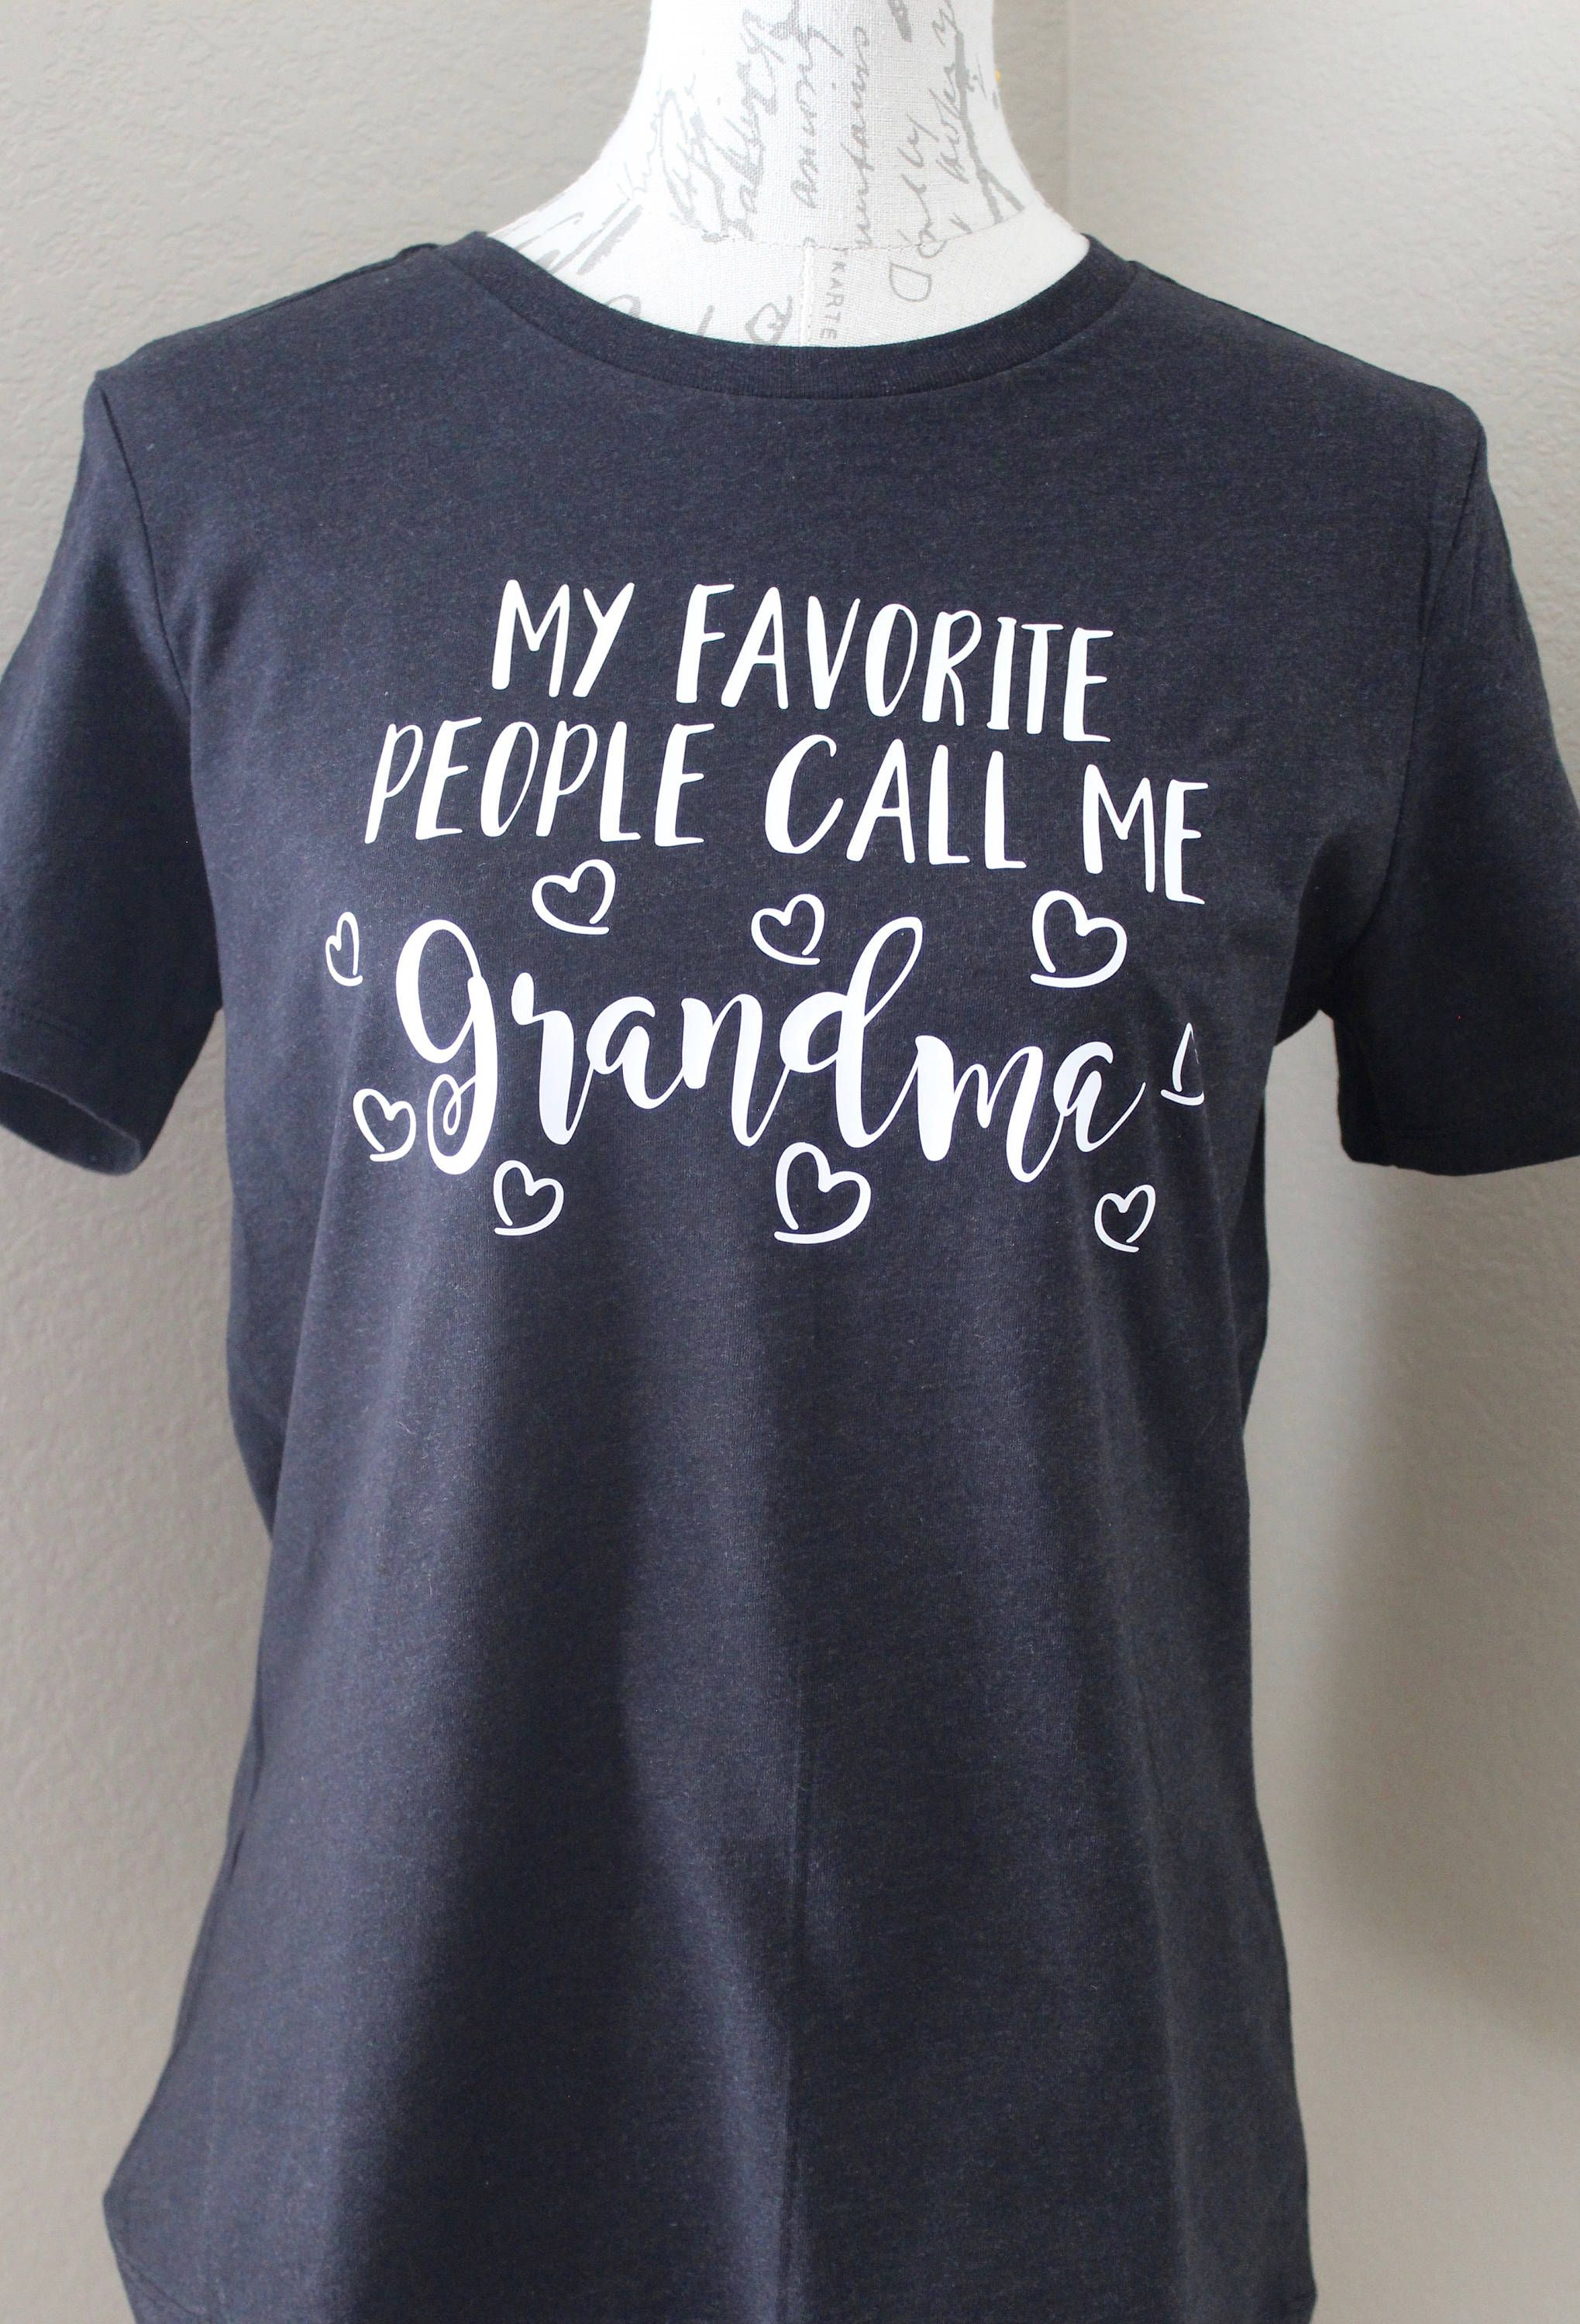 ea7a75b4 Grandma Shirt, Ganny Shirt, Nana Shirt, Grammy Shirt, Mother's Day,  Grandmother's Day, Mom Shirt, Mother's Day Shirt, Grandma, Grandmother by  PurpleAspen on ...